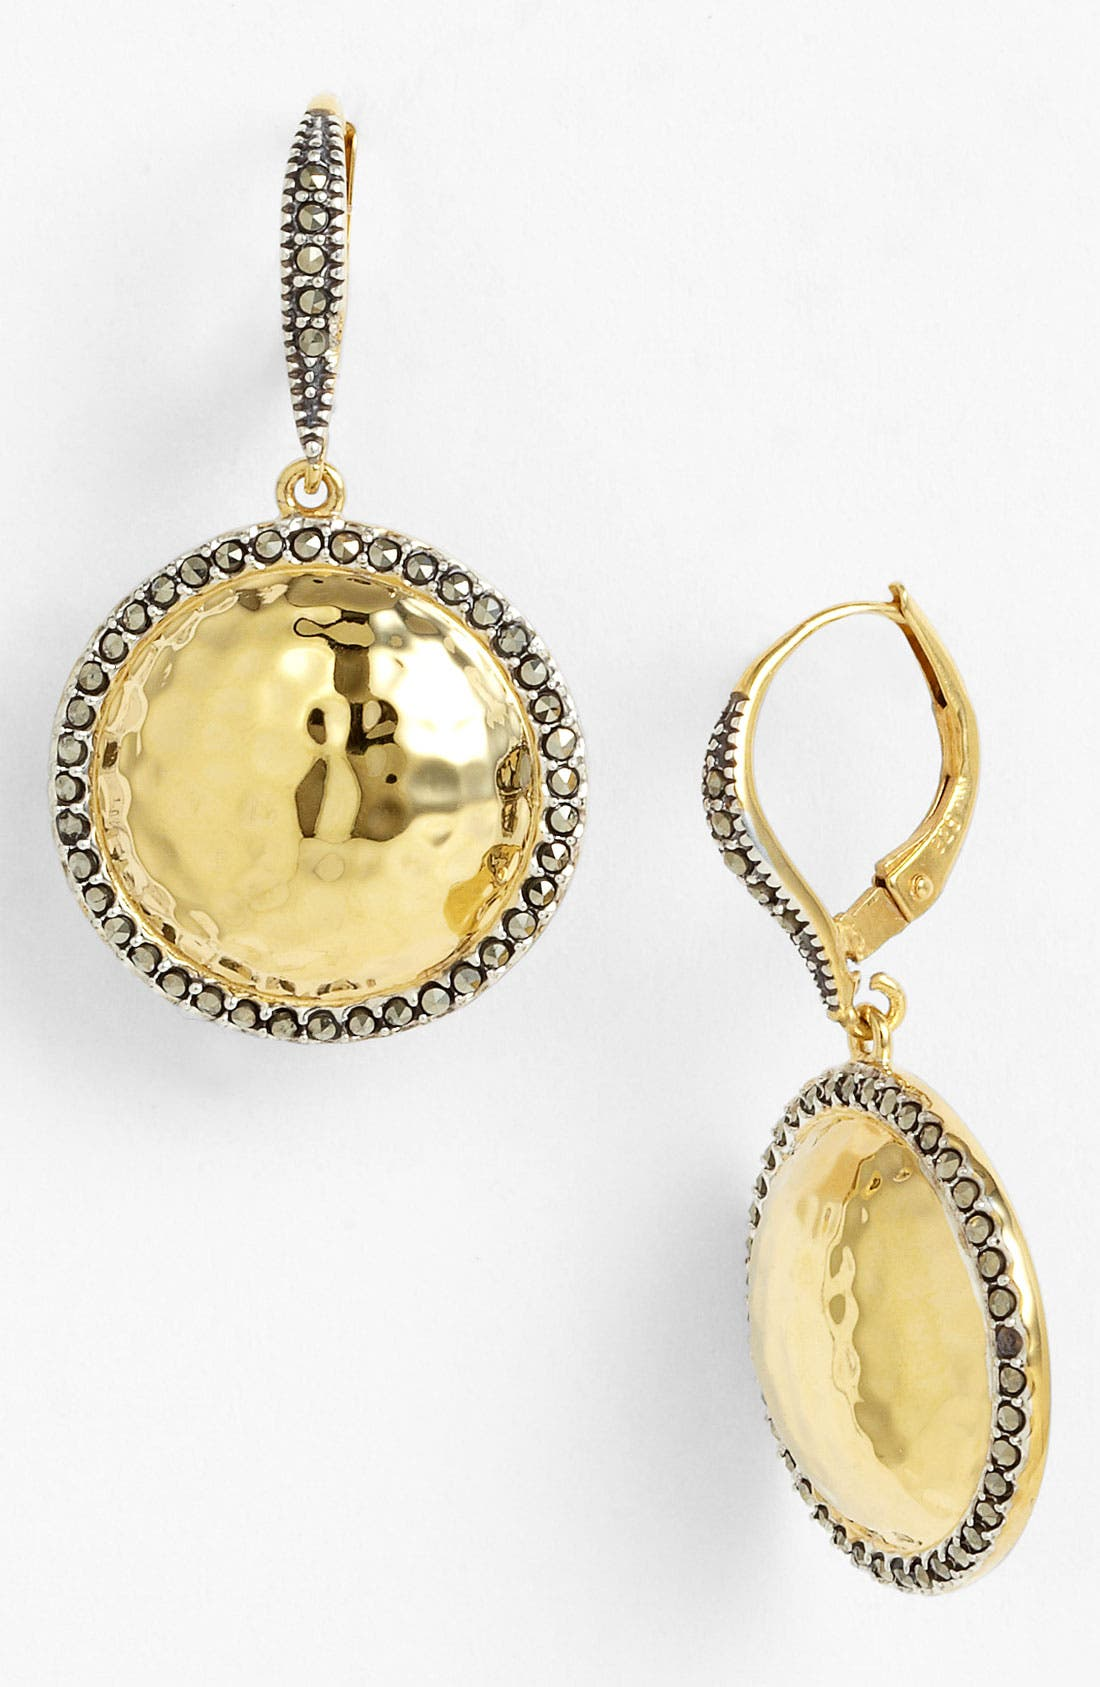 Alternate Image 1 Selected - Judith Jack 'Gold Sea' Puffy Dome Drop Earrings